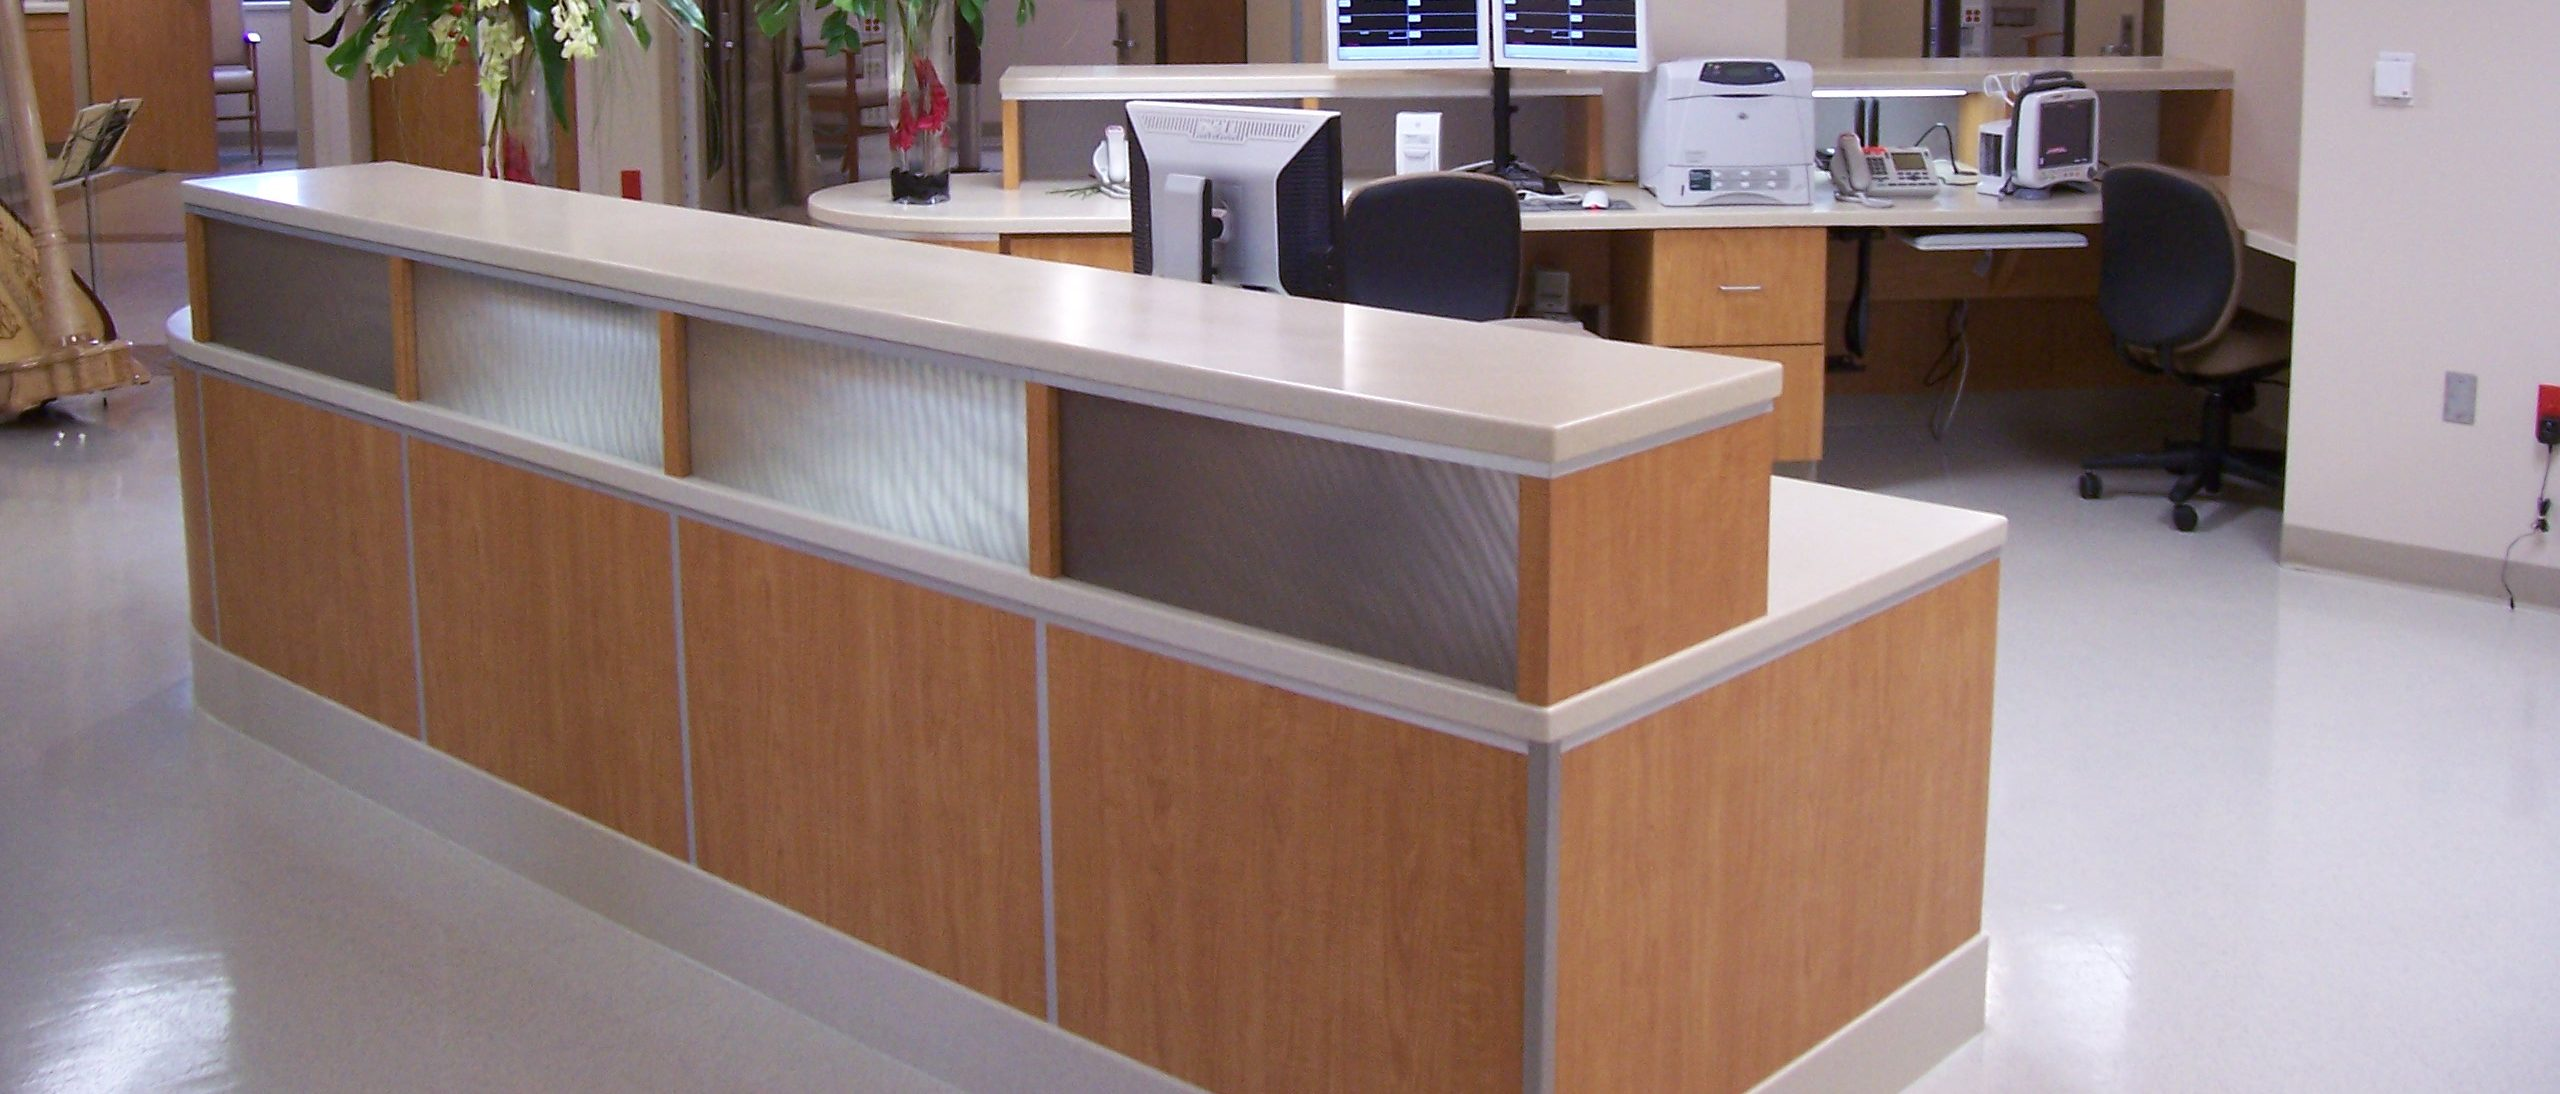 Commercial Casework Solutions